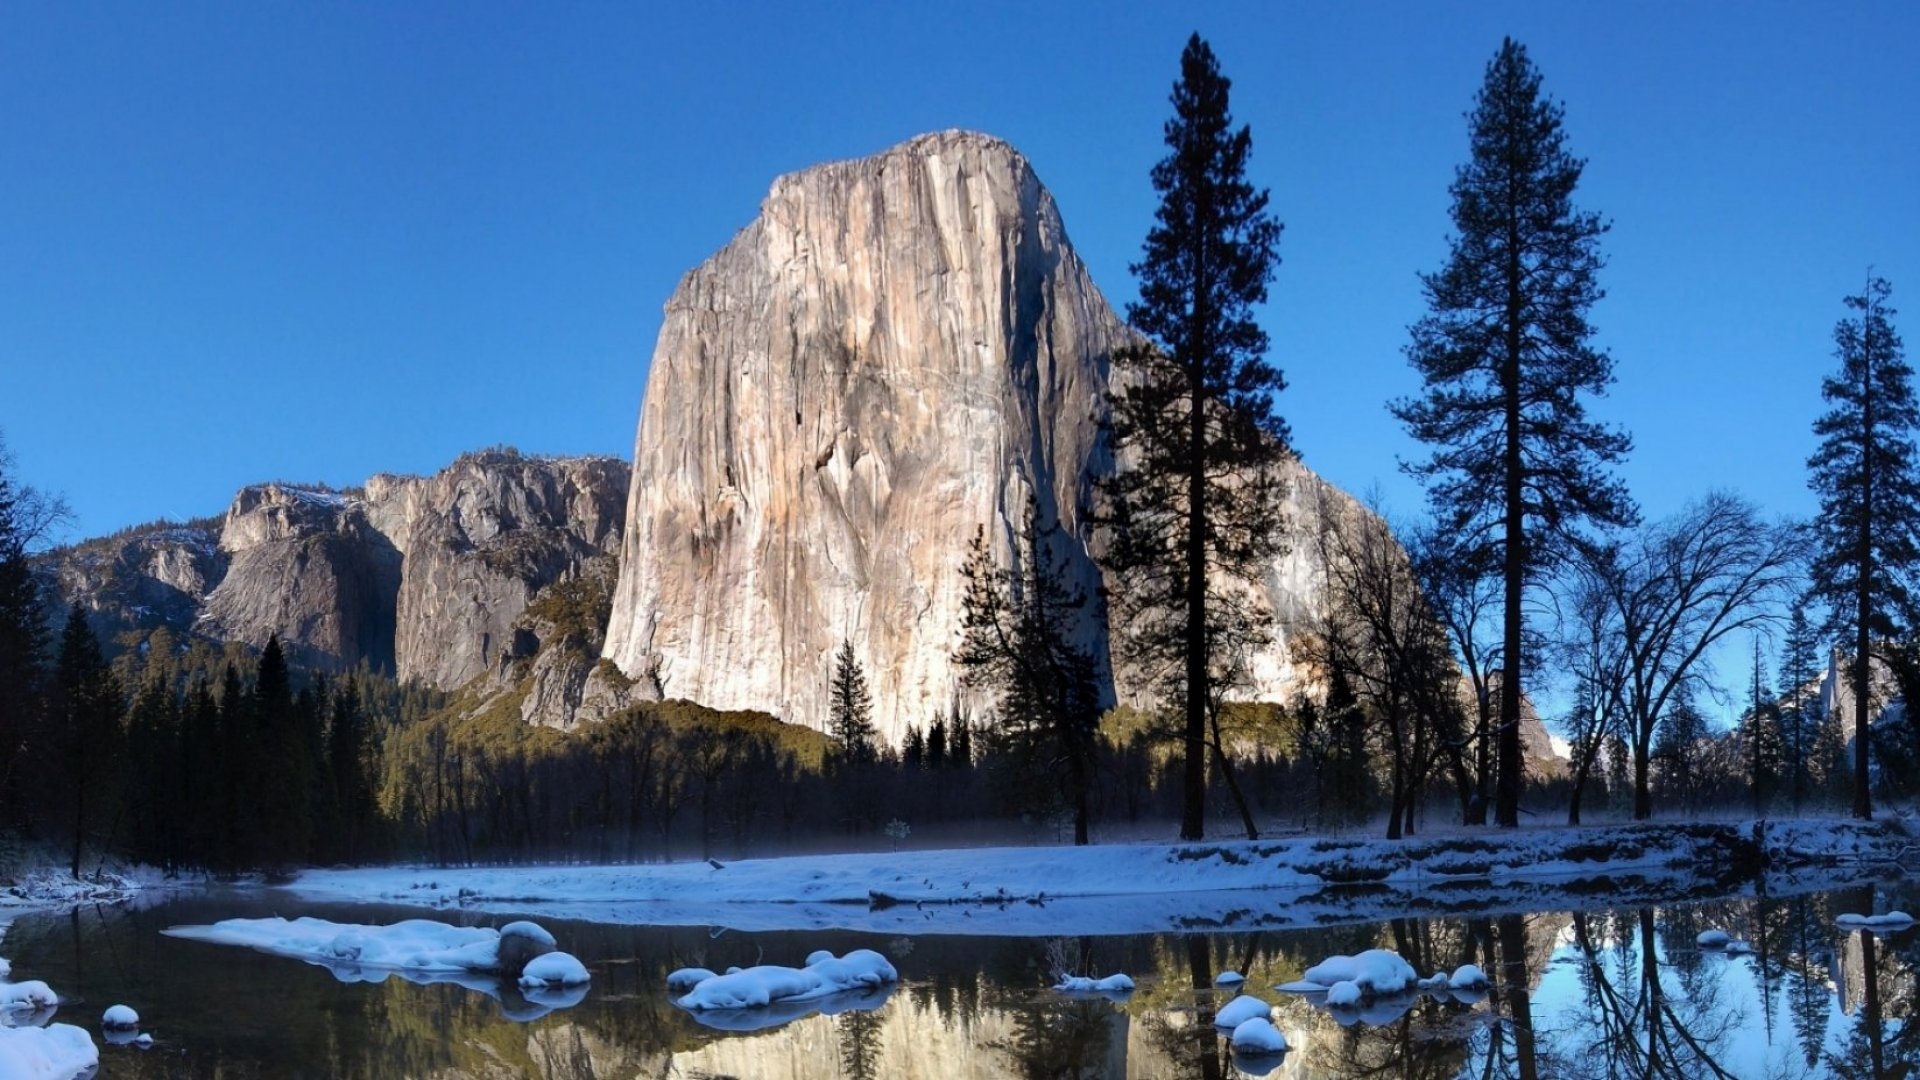 3 Unusual Leadership Lessons From the First Free Solo Climb of El Capitan